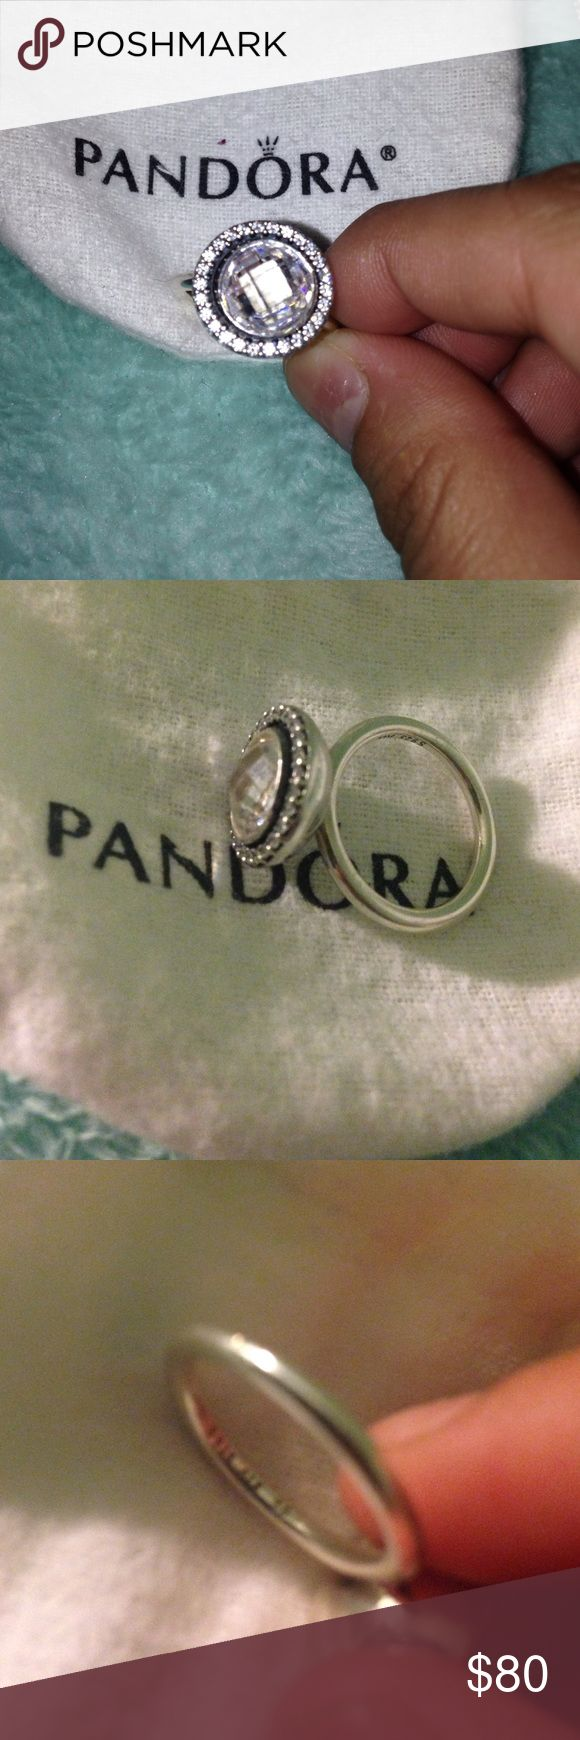 Brilliant Legacy PANDORA ring size 50/5 Brilliant legacy size 5 ring, sterling silver with Clear CZ 100% authentic Pandora. FEEL FREE TO MAKE OFFERS but I will not undersell. Comes W/BOX worn once Pandora Jewelry Rings